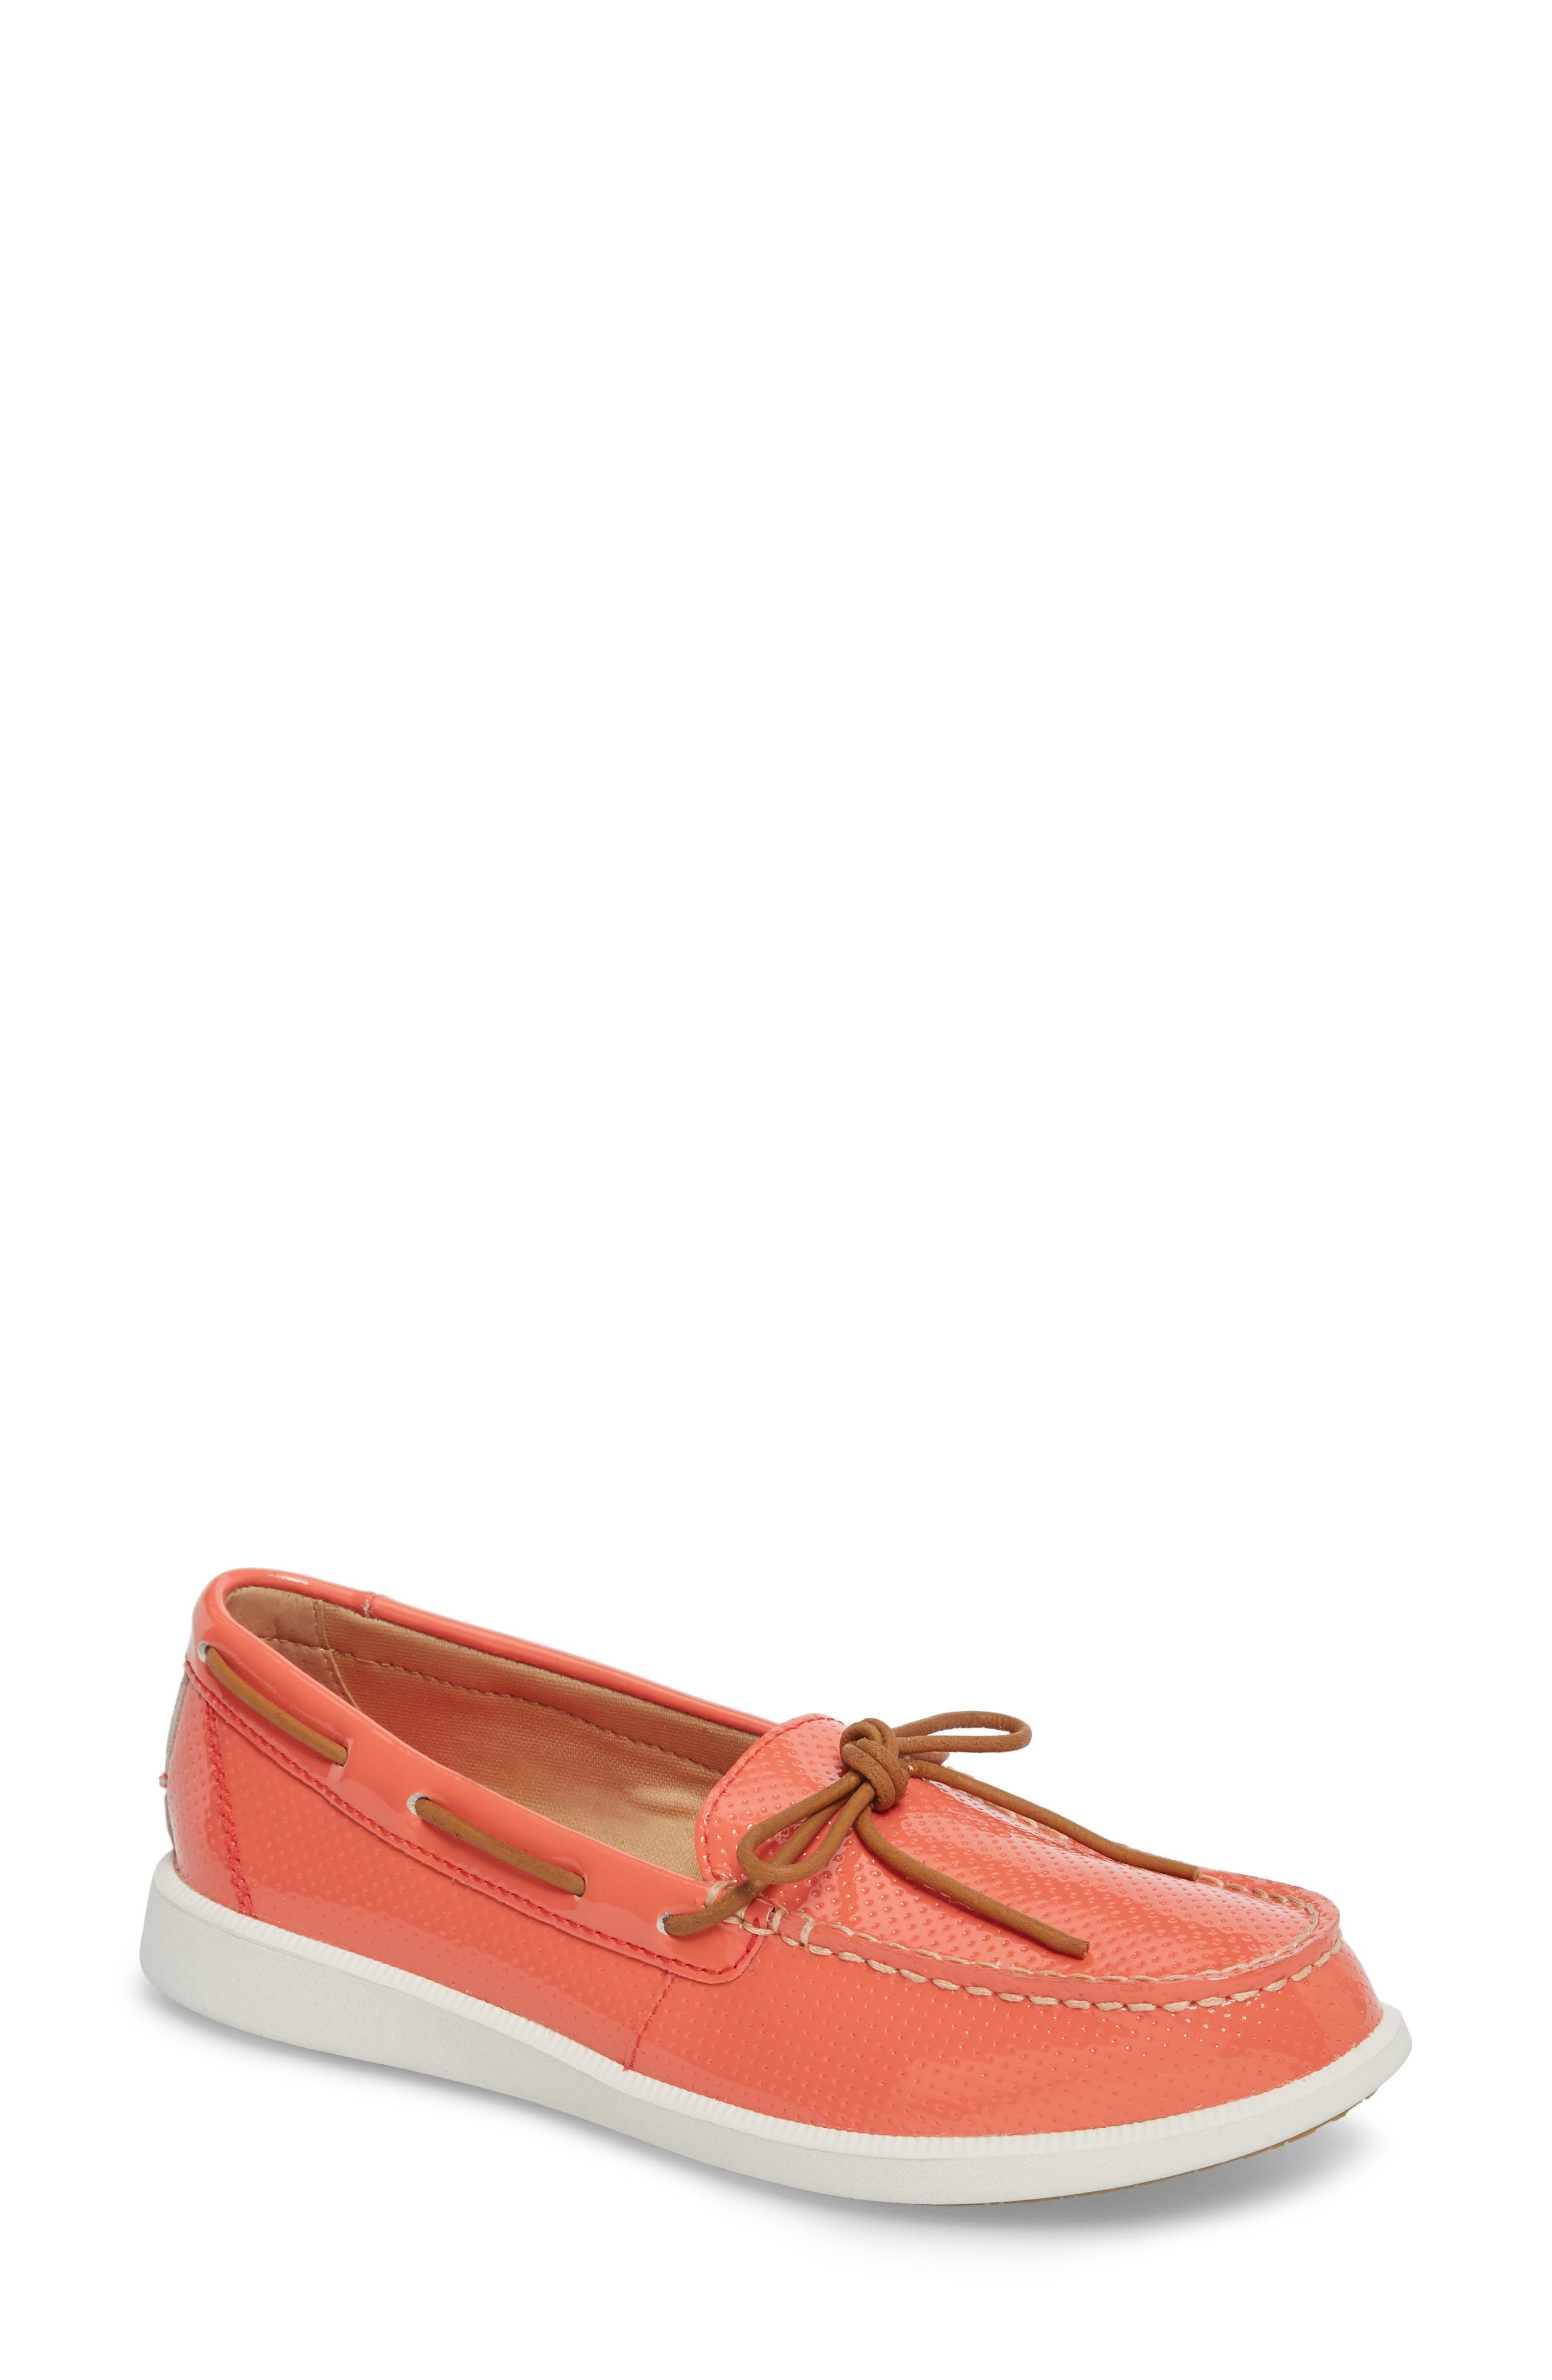 sperry top-sider shoes largo perforated loafers leather men s j